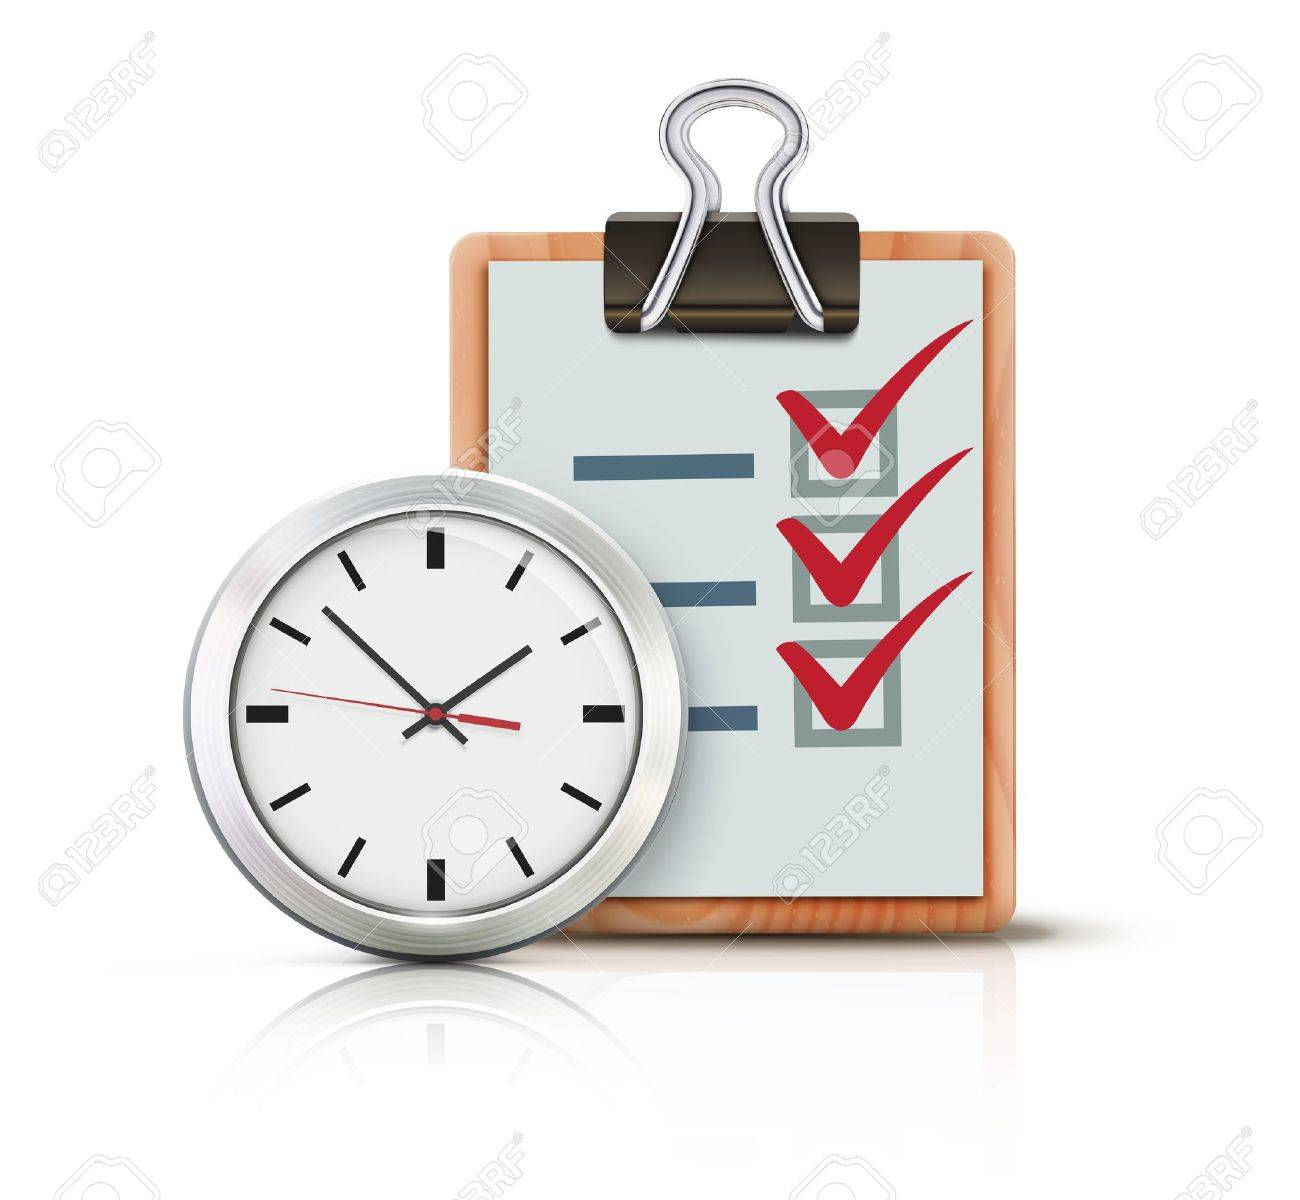 Vector illustration of timing concept with classic office clock and check list on clipboard isolated on white background Stock Vector - 17359232